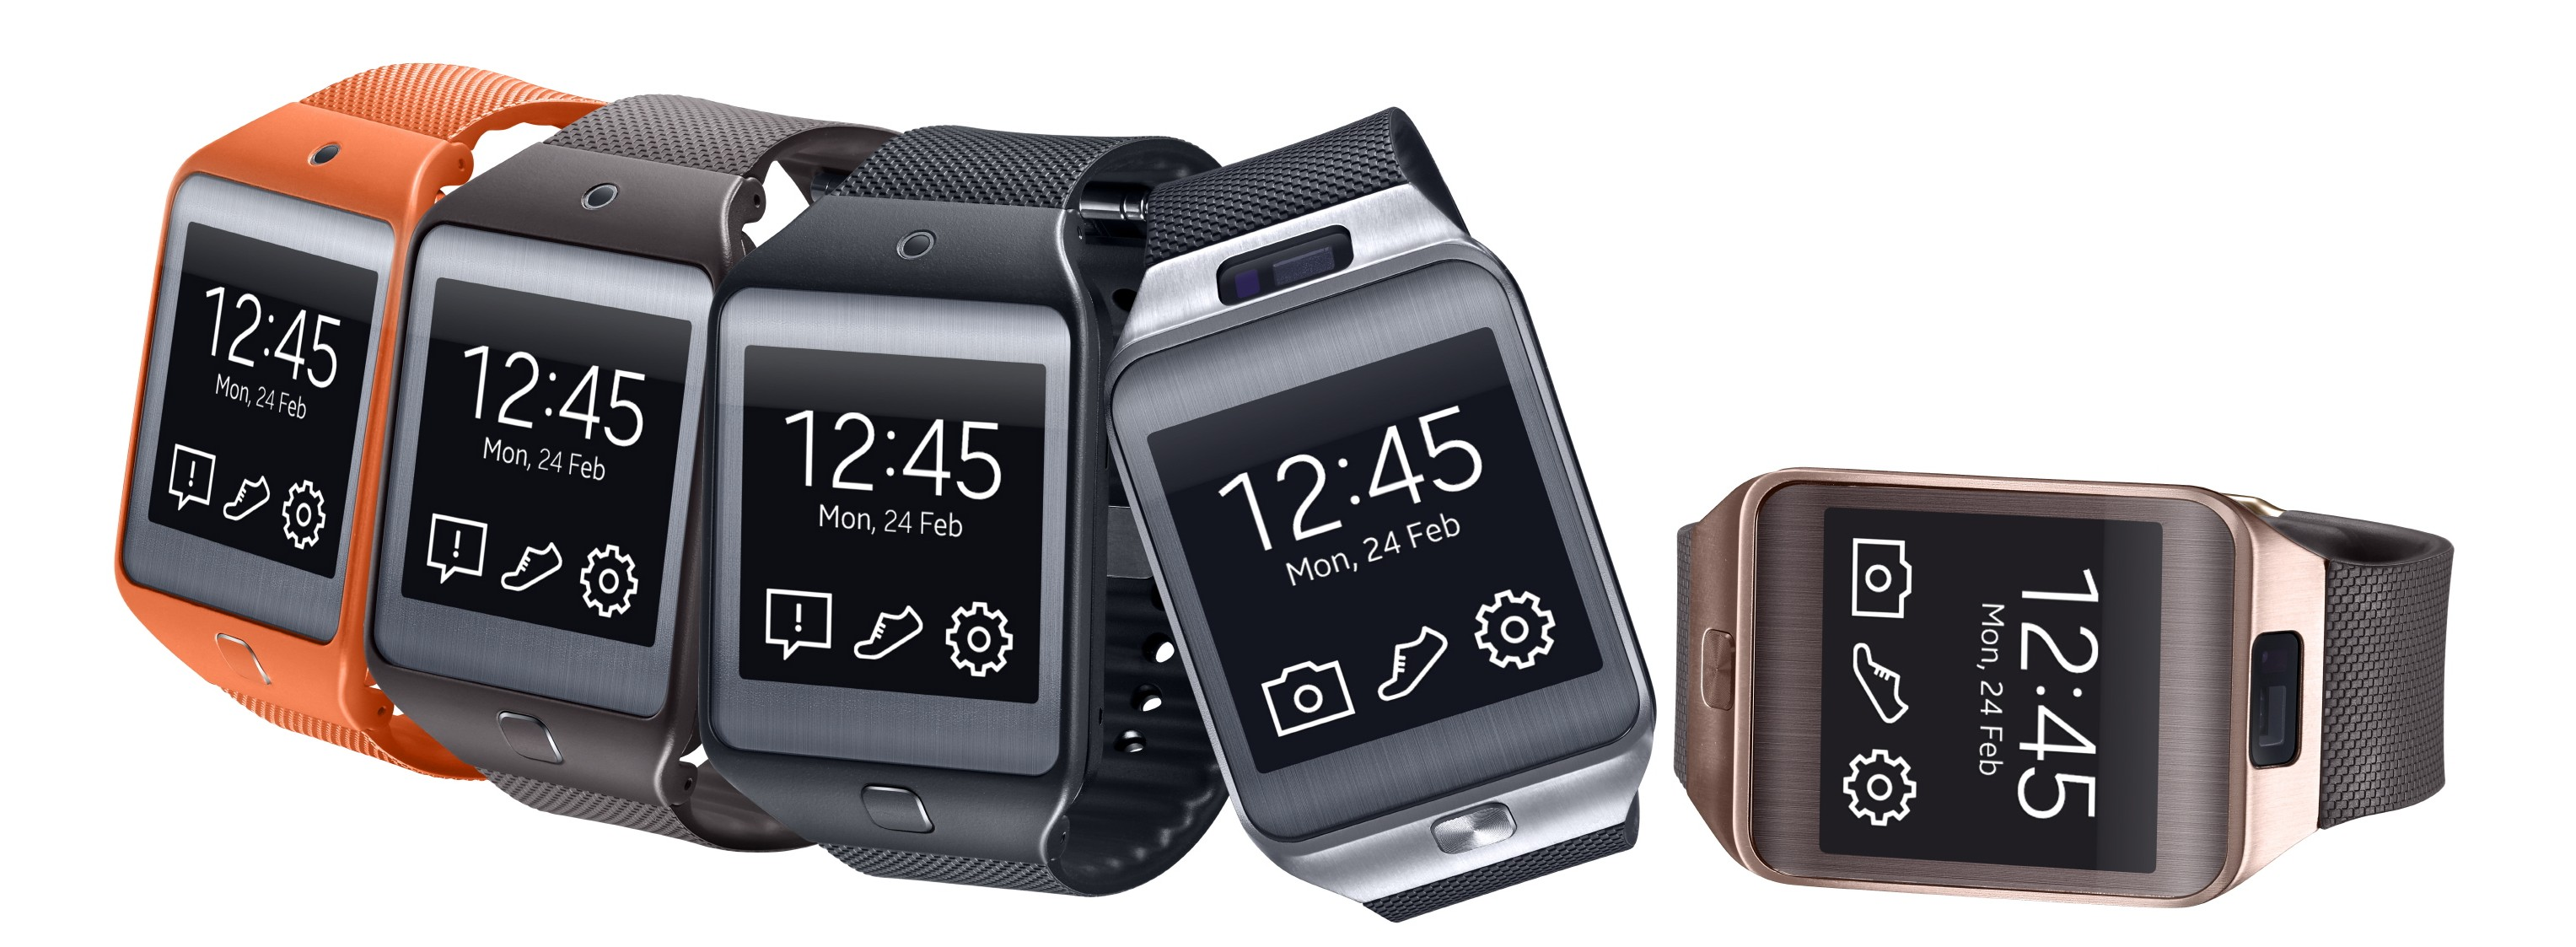 Samsung Group_Gear 2_Gear 2 Neo